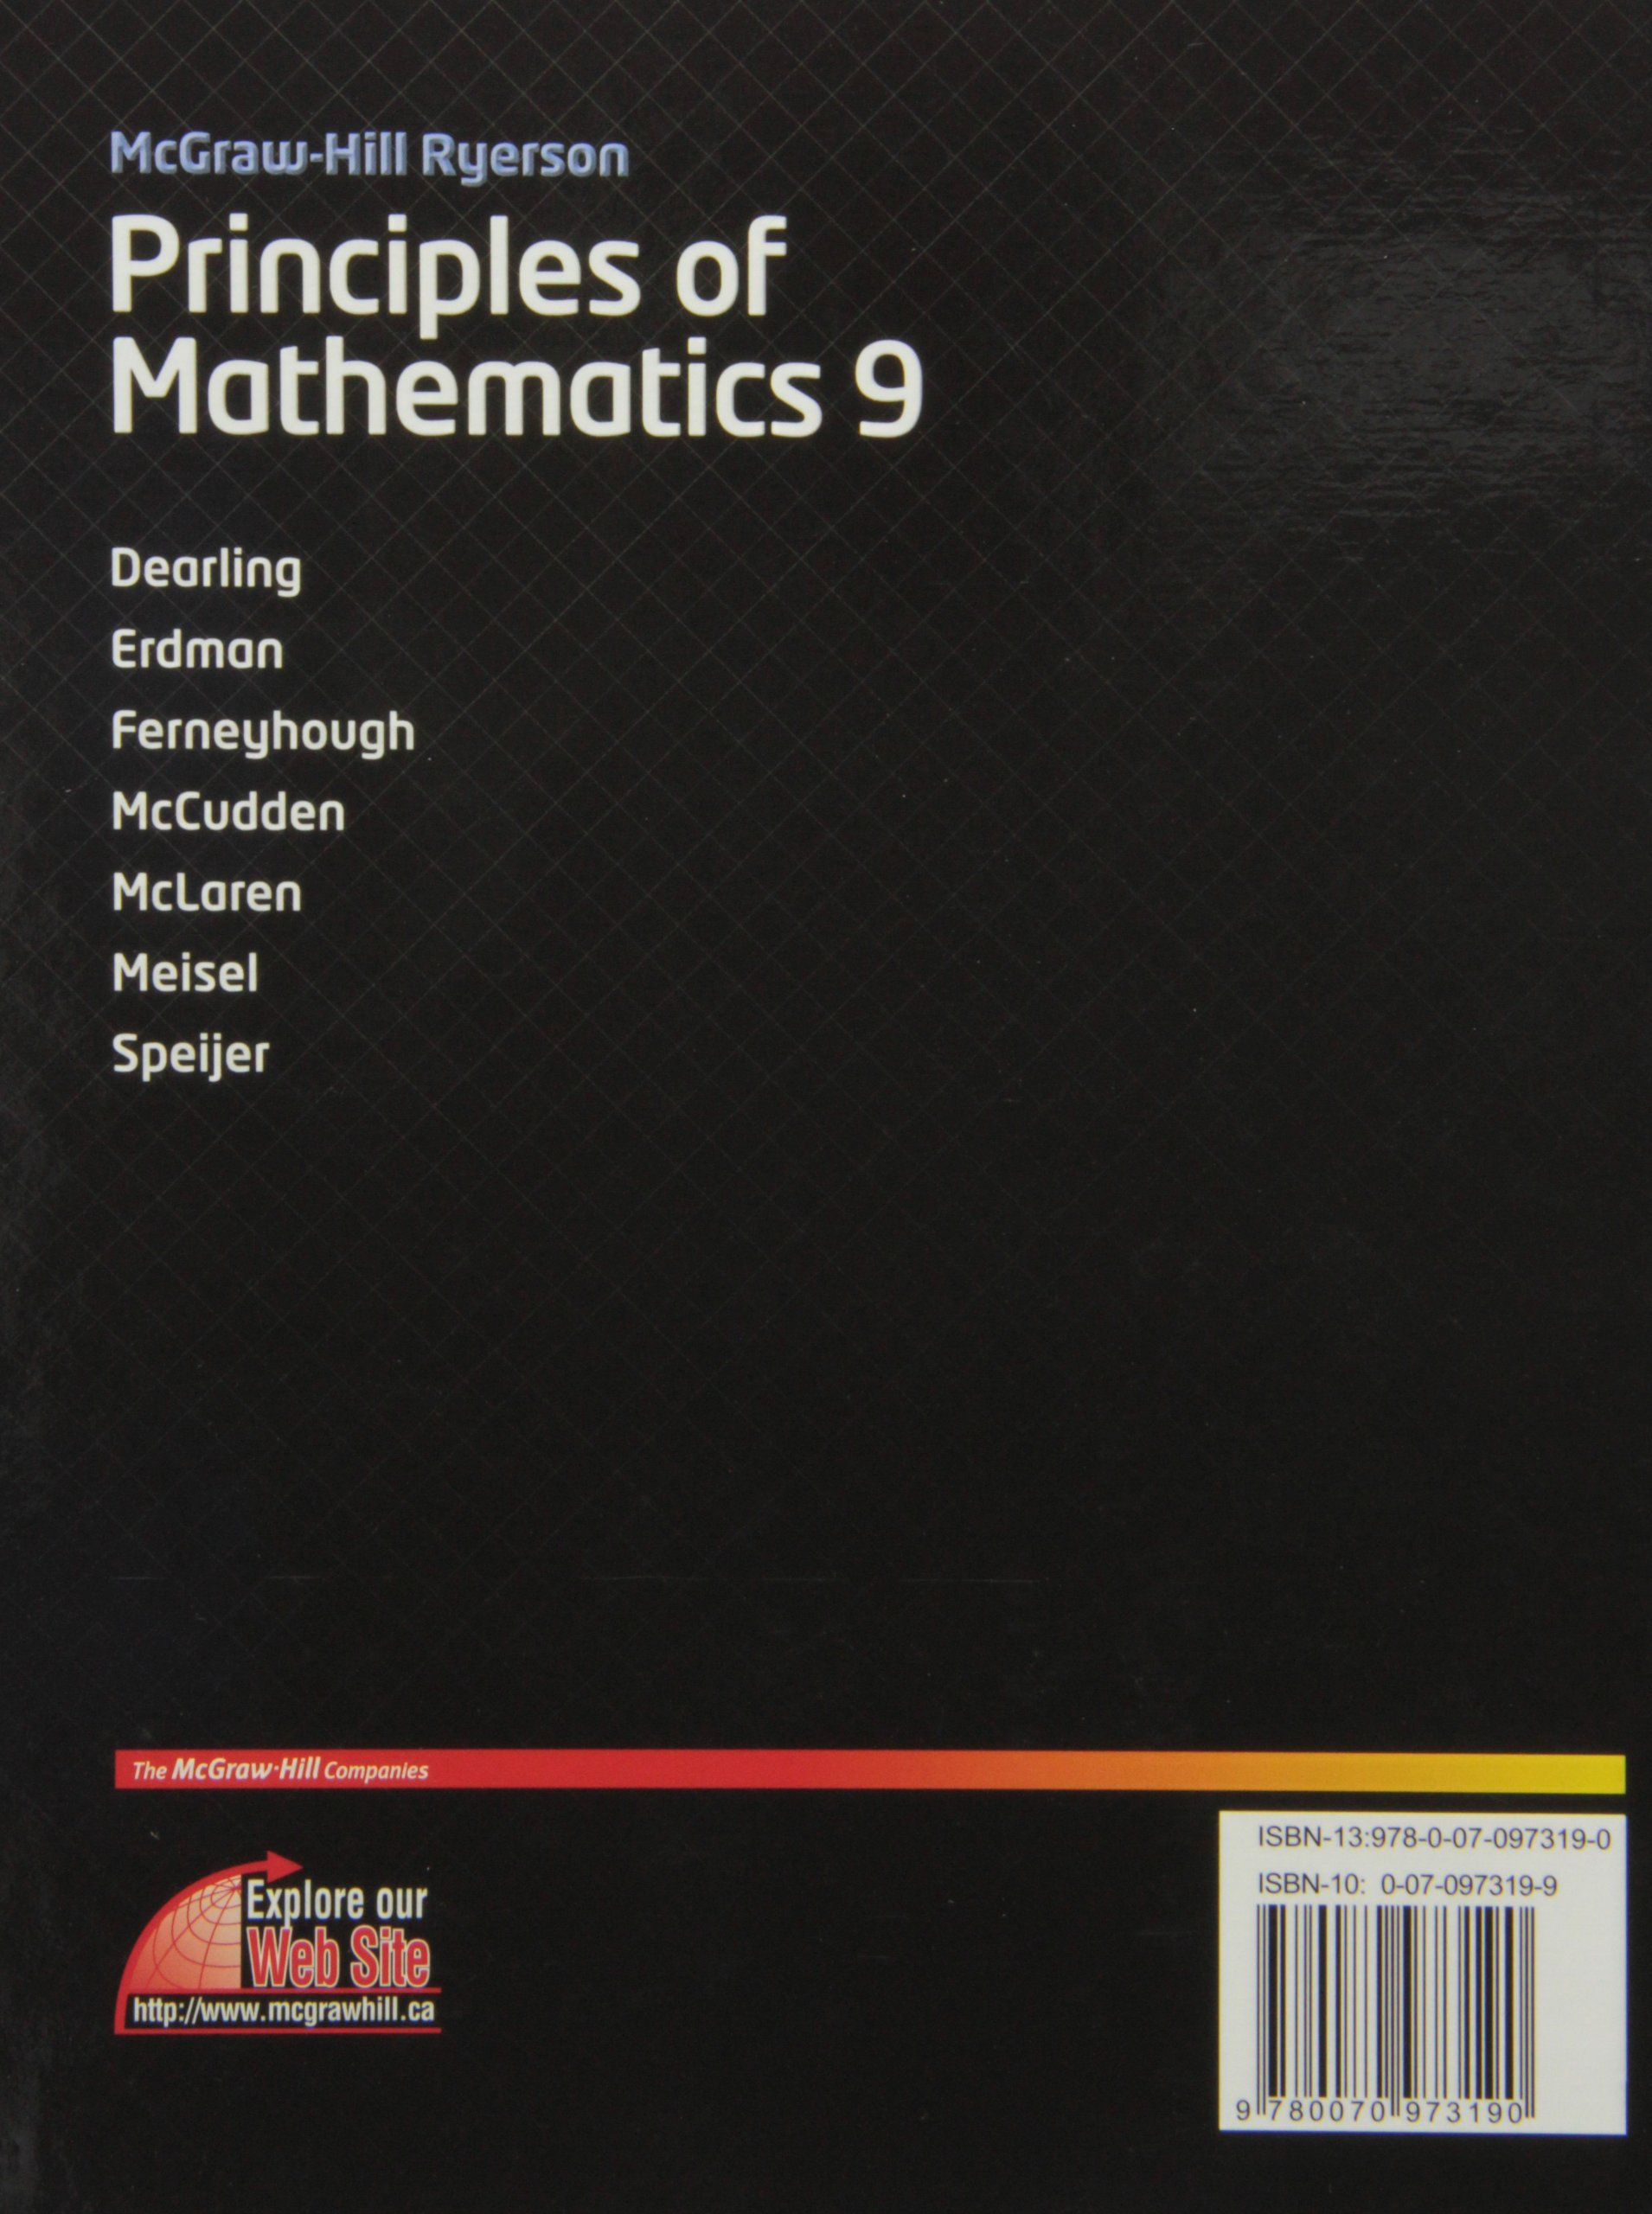 Mcgraw hill ryerson principles of mathematics 10 pdf free download.